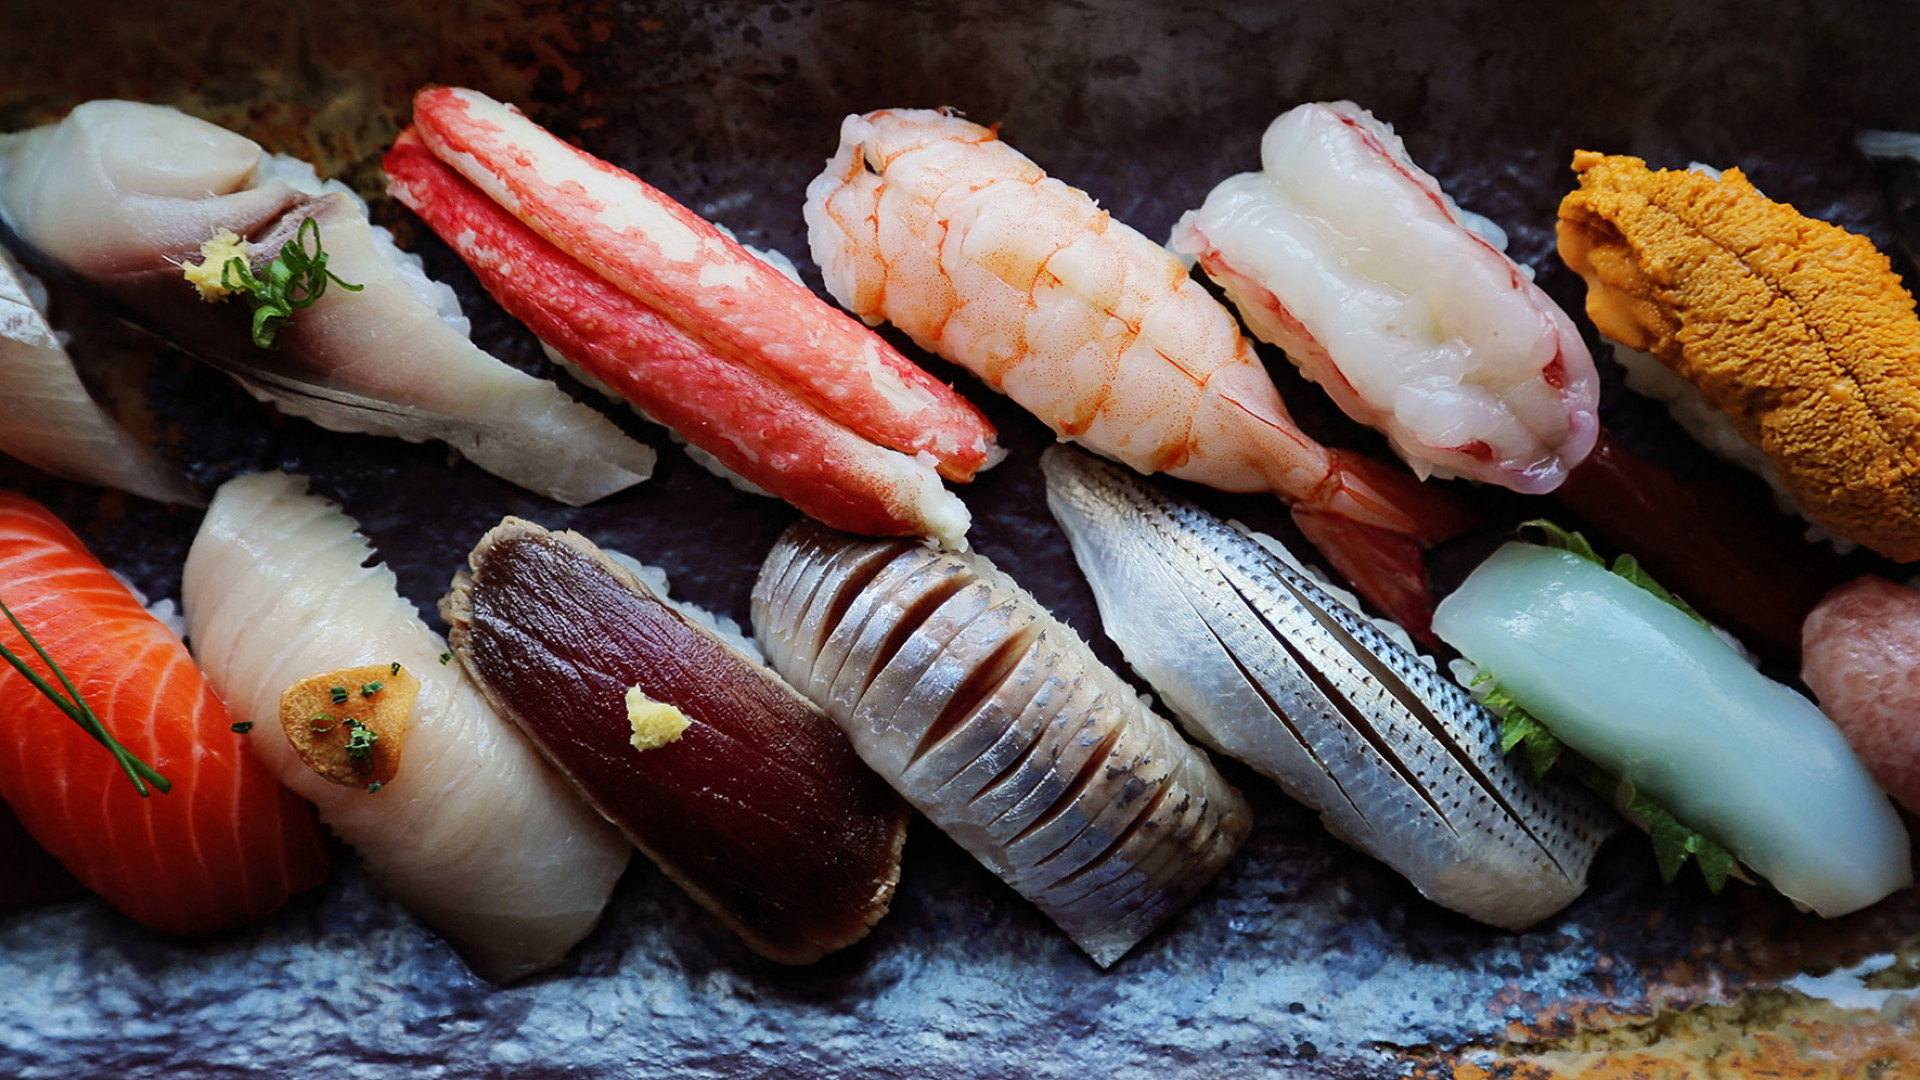 Manggha Jasieński's fulfilled dream. Want to know what the difference between sushi and sashimi is – best to pay a visit to the EDO SUSHI BAR.